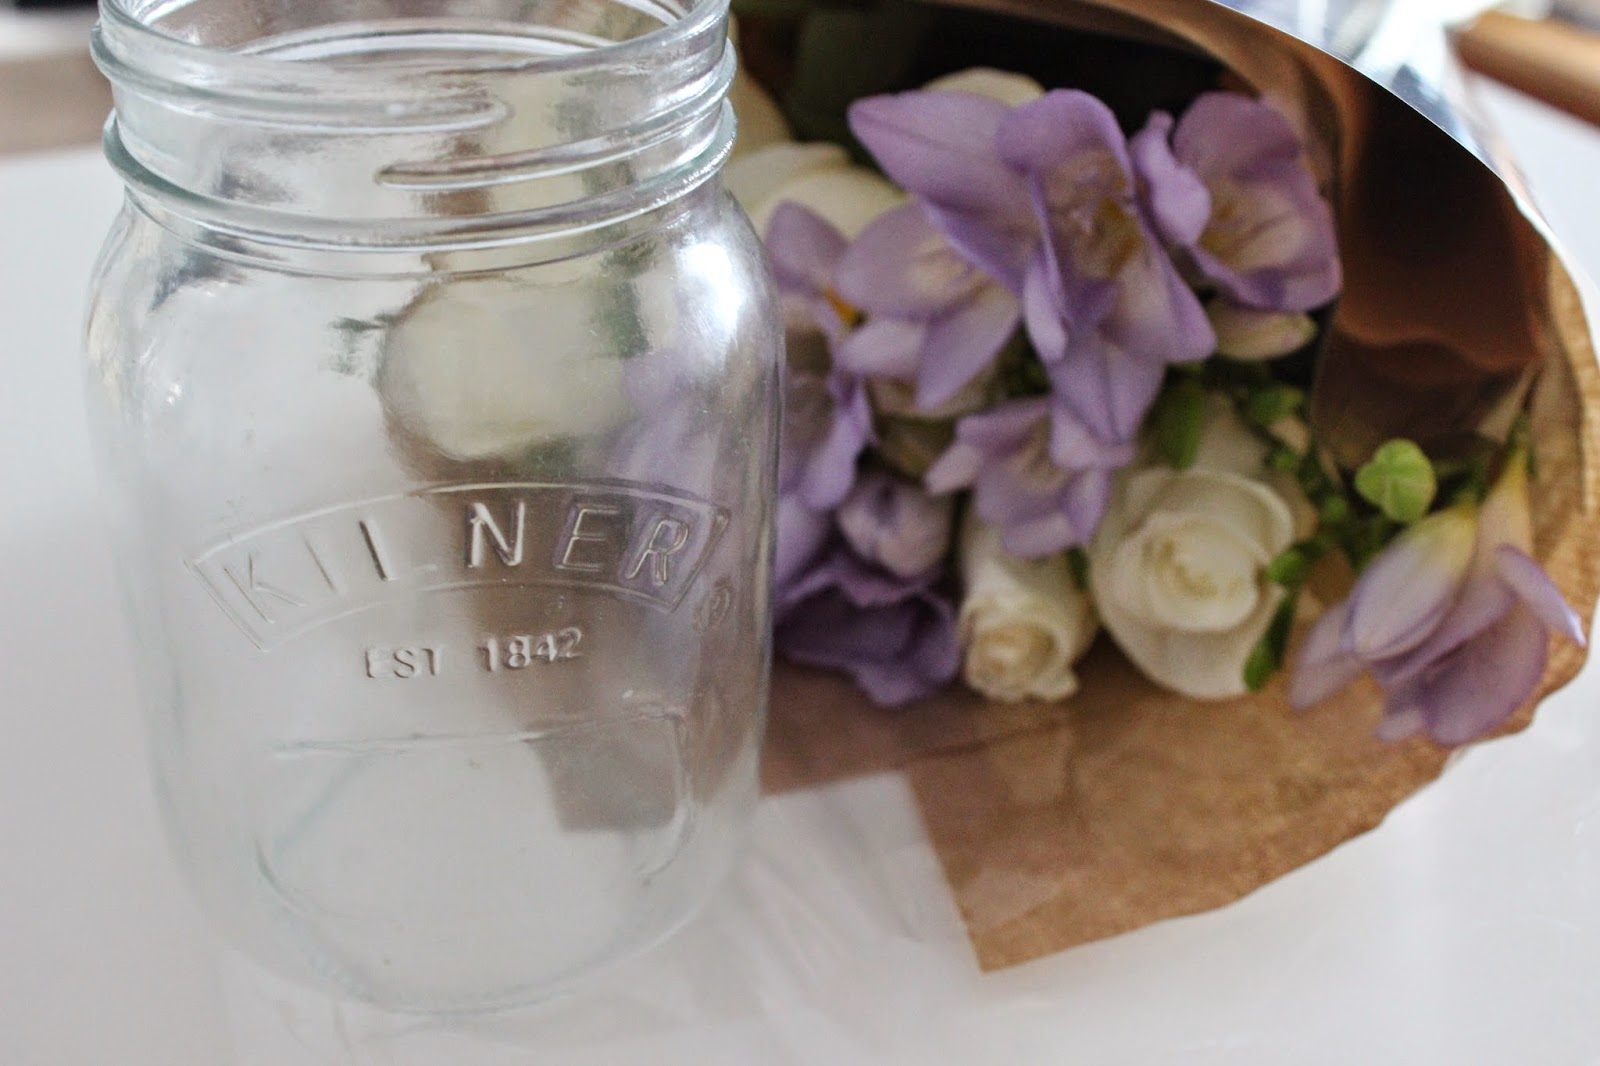 kilner jar, flowers